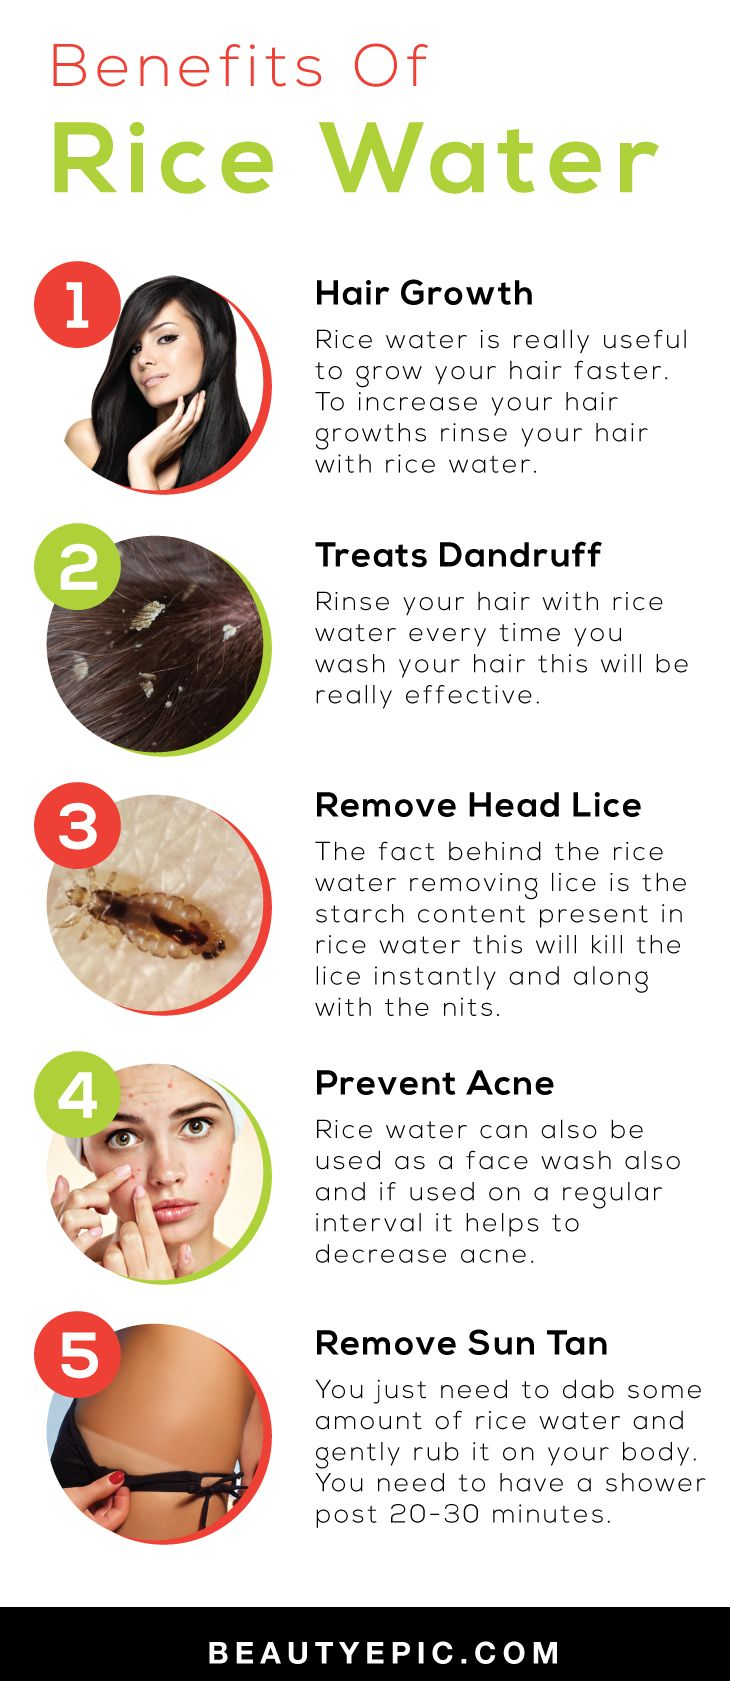 Rice Water Benefits And Uses For Health Beauty Water Benefits For Skin Water Hair Growth Rice Water Benefits